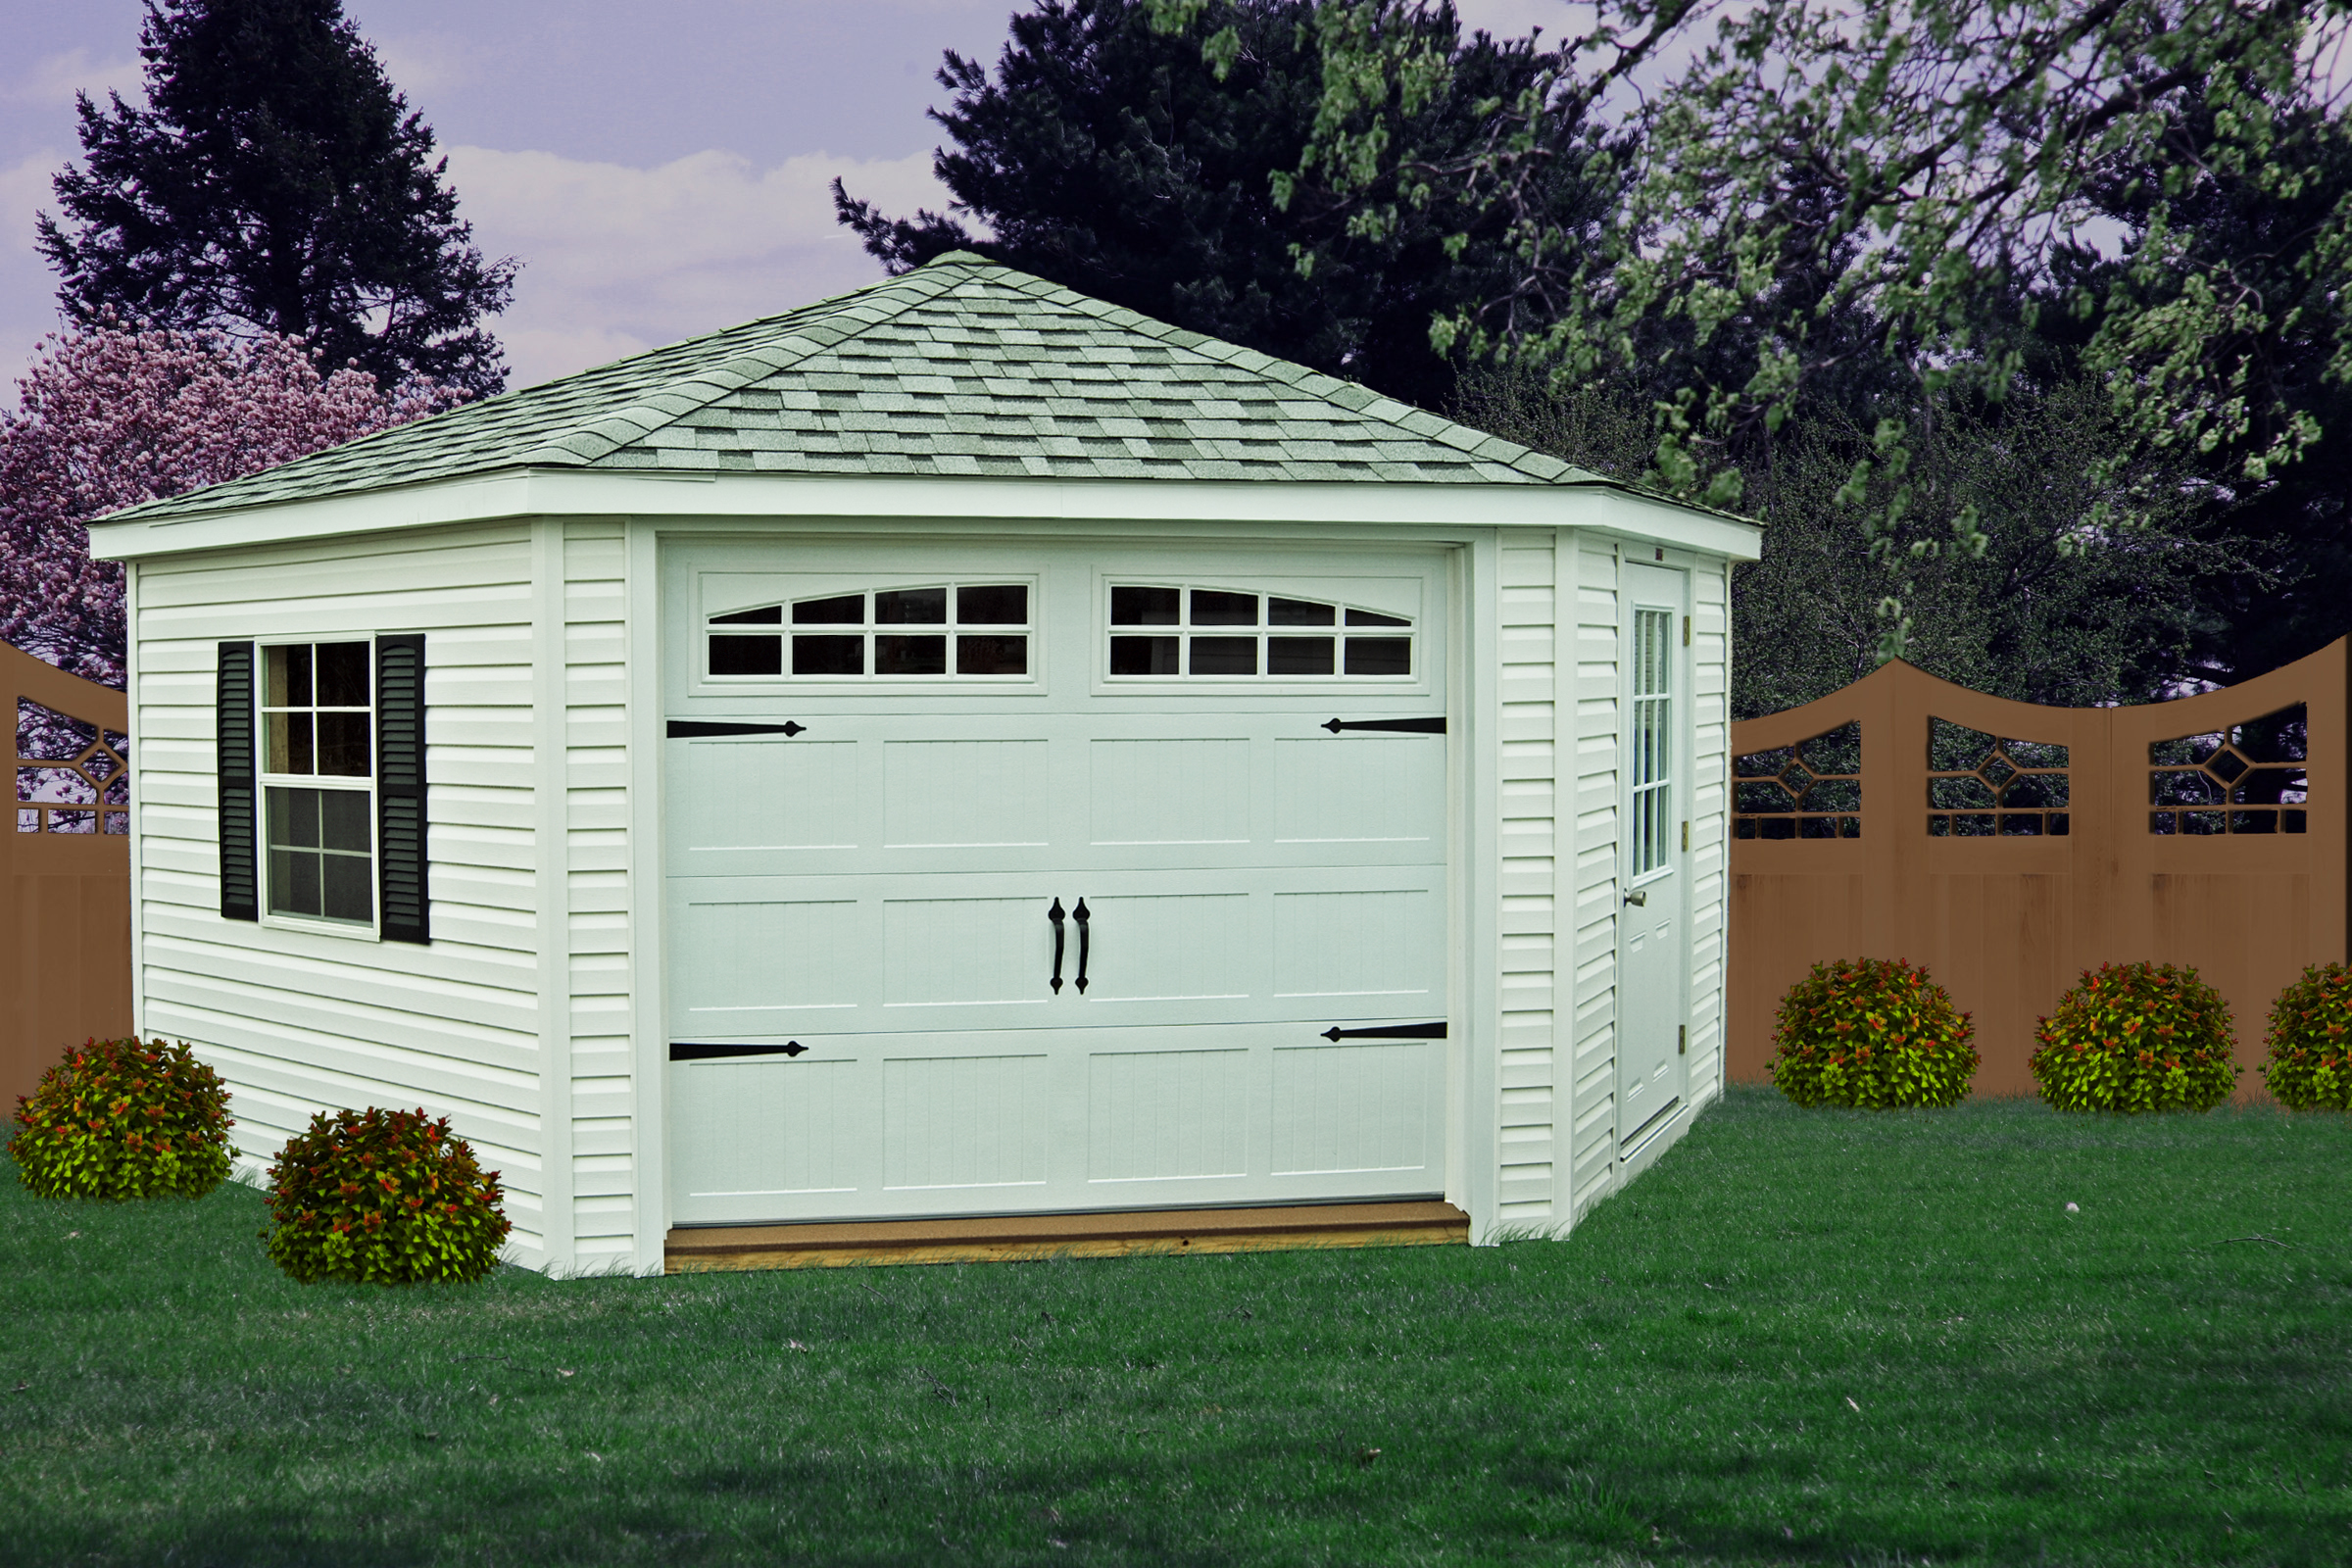 a corner garden shed will improve your life cool shed design